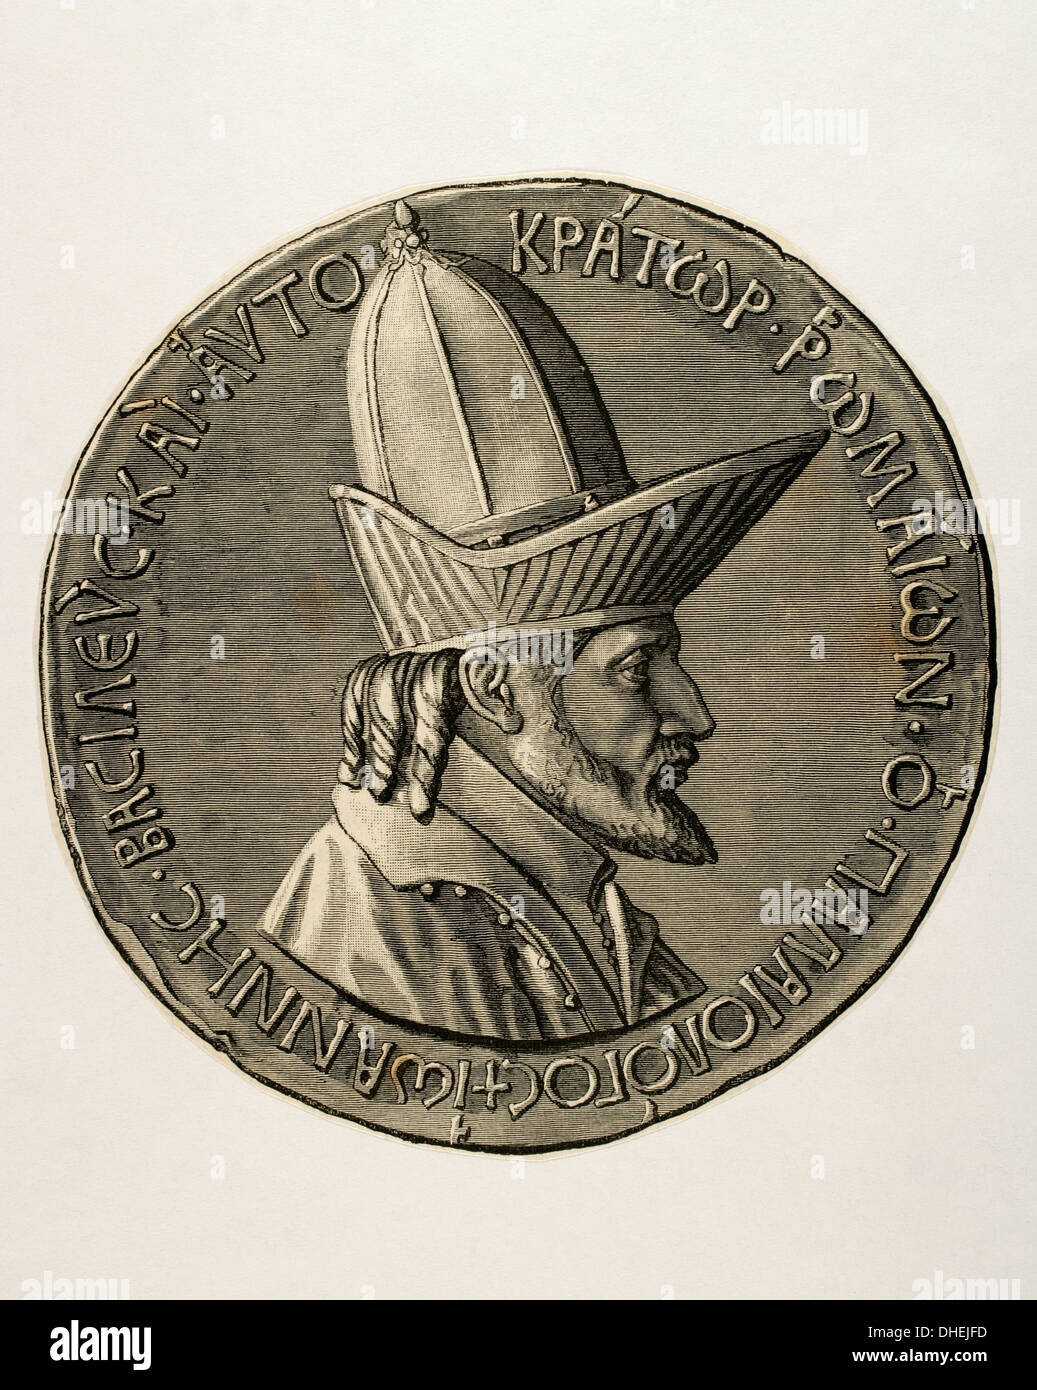 John VIII Palaiologos or Palaeologus (1392-1448). Penultimate reigning  Byzantine Emperor, ruling from 1425 to 1448. Engraving.